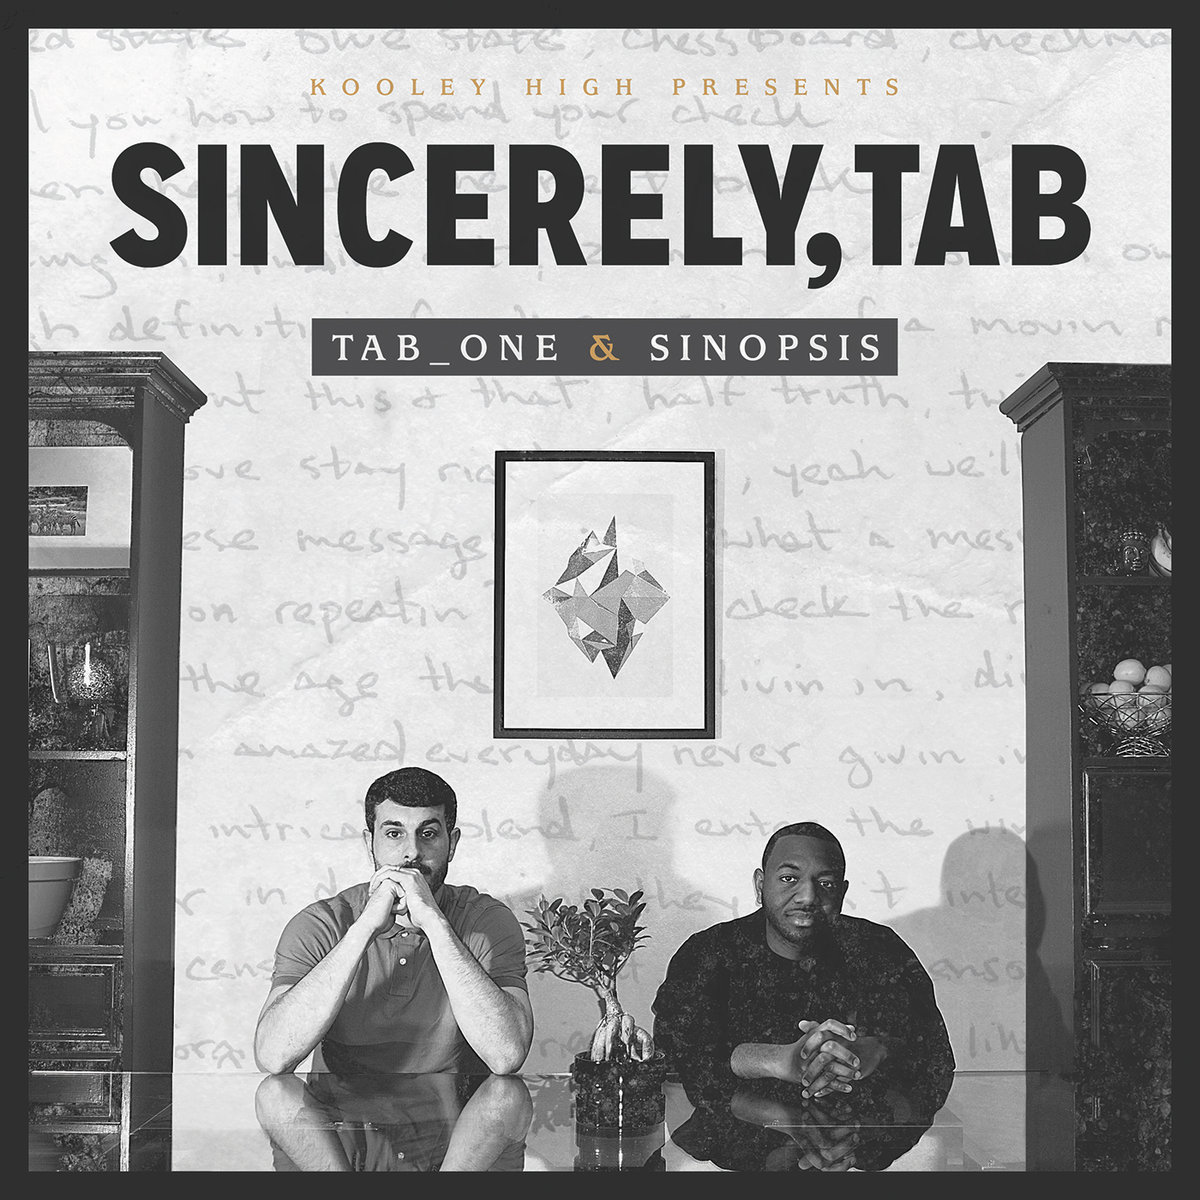 Sincerely__tab